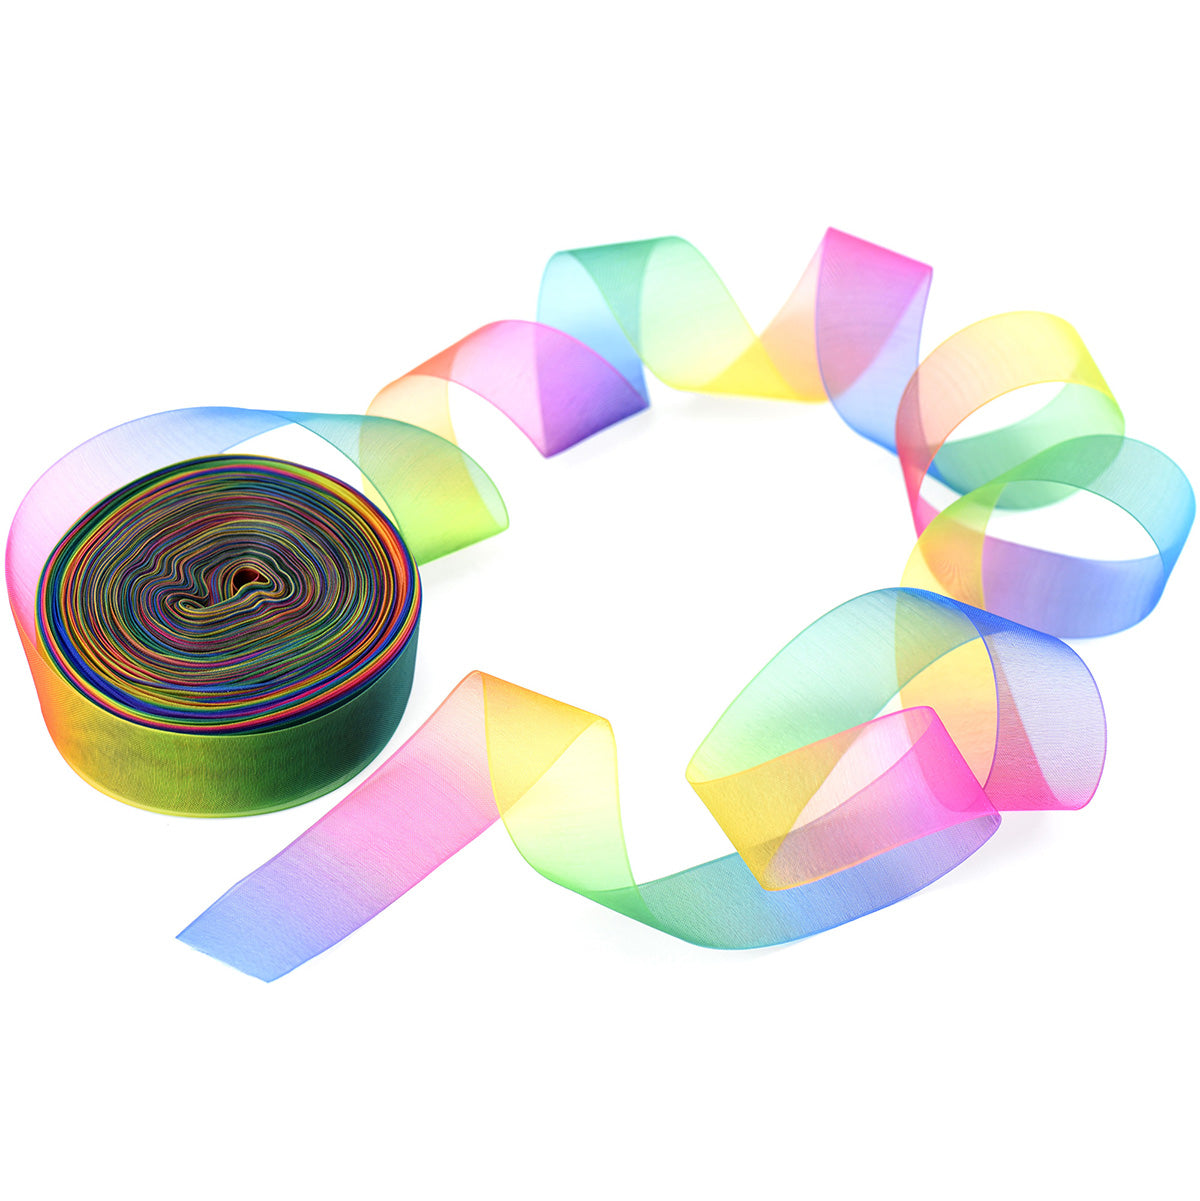 25mm [45 metres/50 Yards] Rainbow Chiffon Gradient Polyester Ribbon | Party Festive Gift Wrap Scrapbooking Decoration